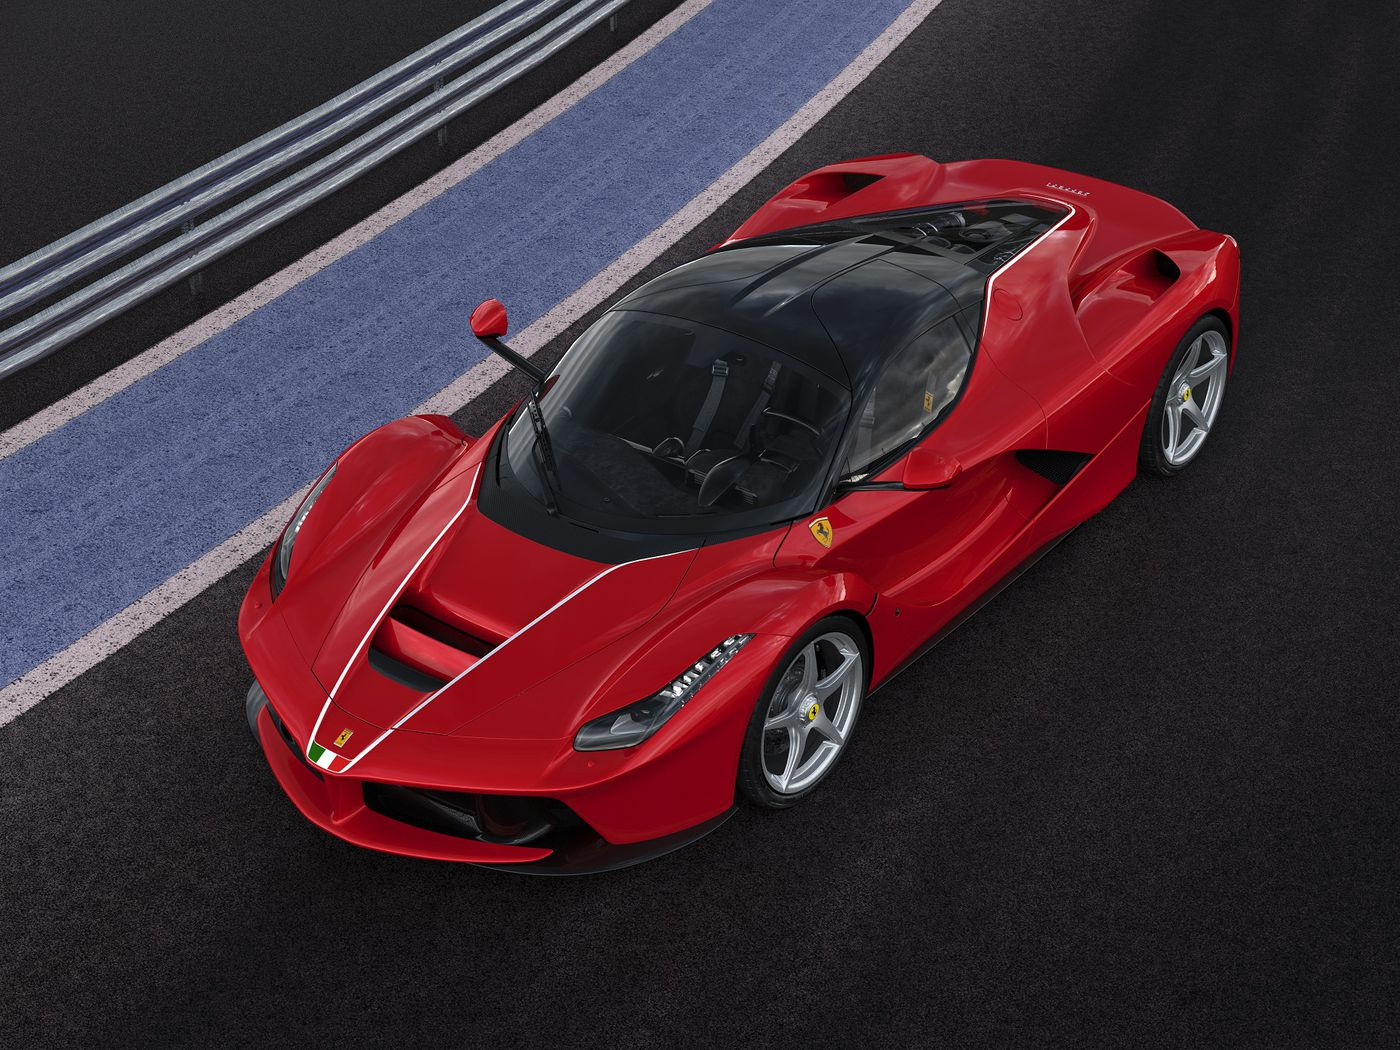 Million Laferrari Becomes This Centurys Most Expensive Car Sold At Auction The Verge